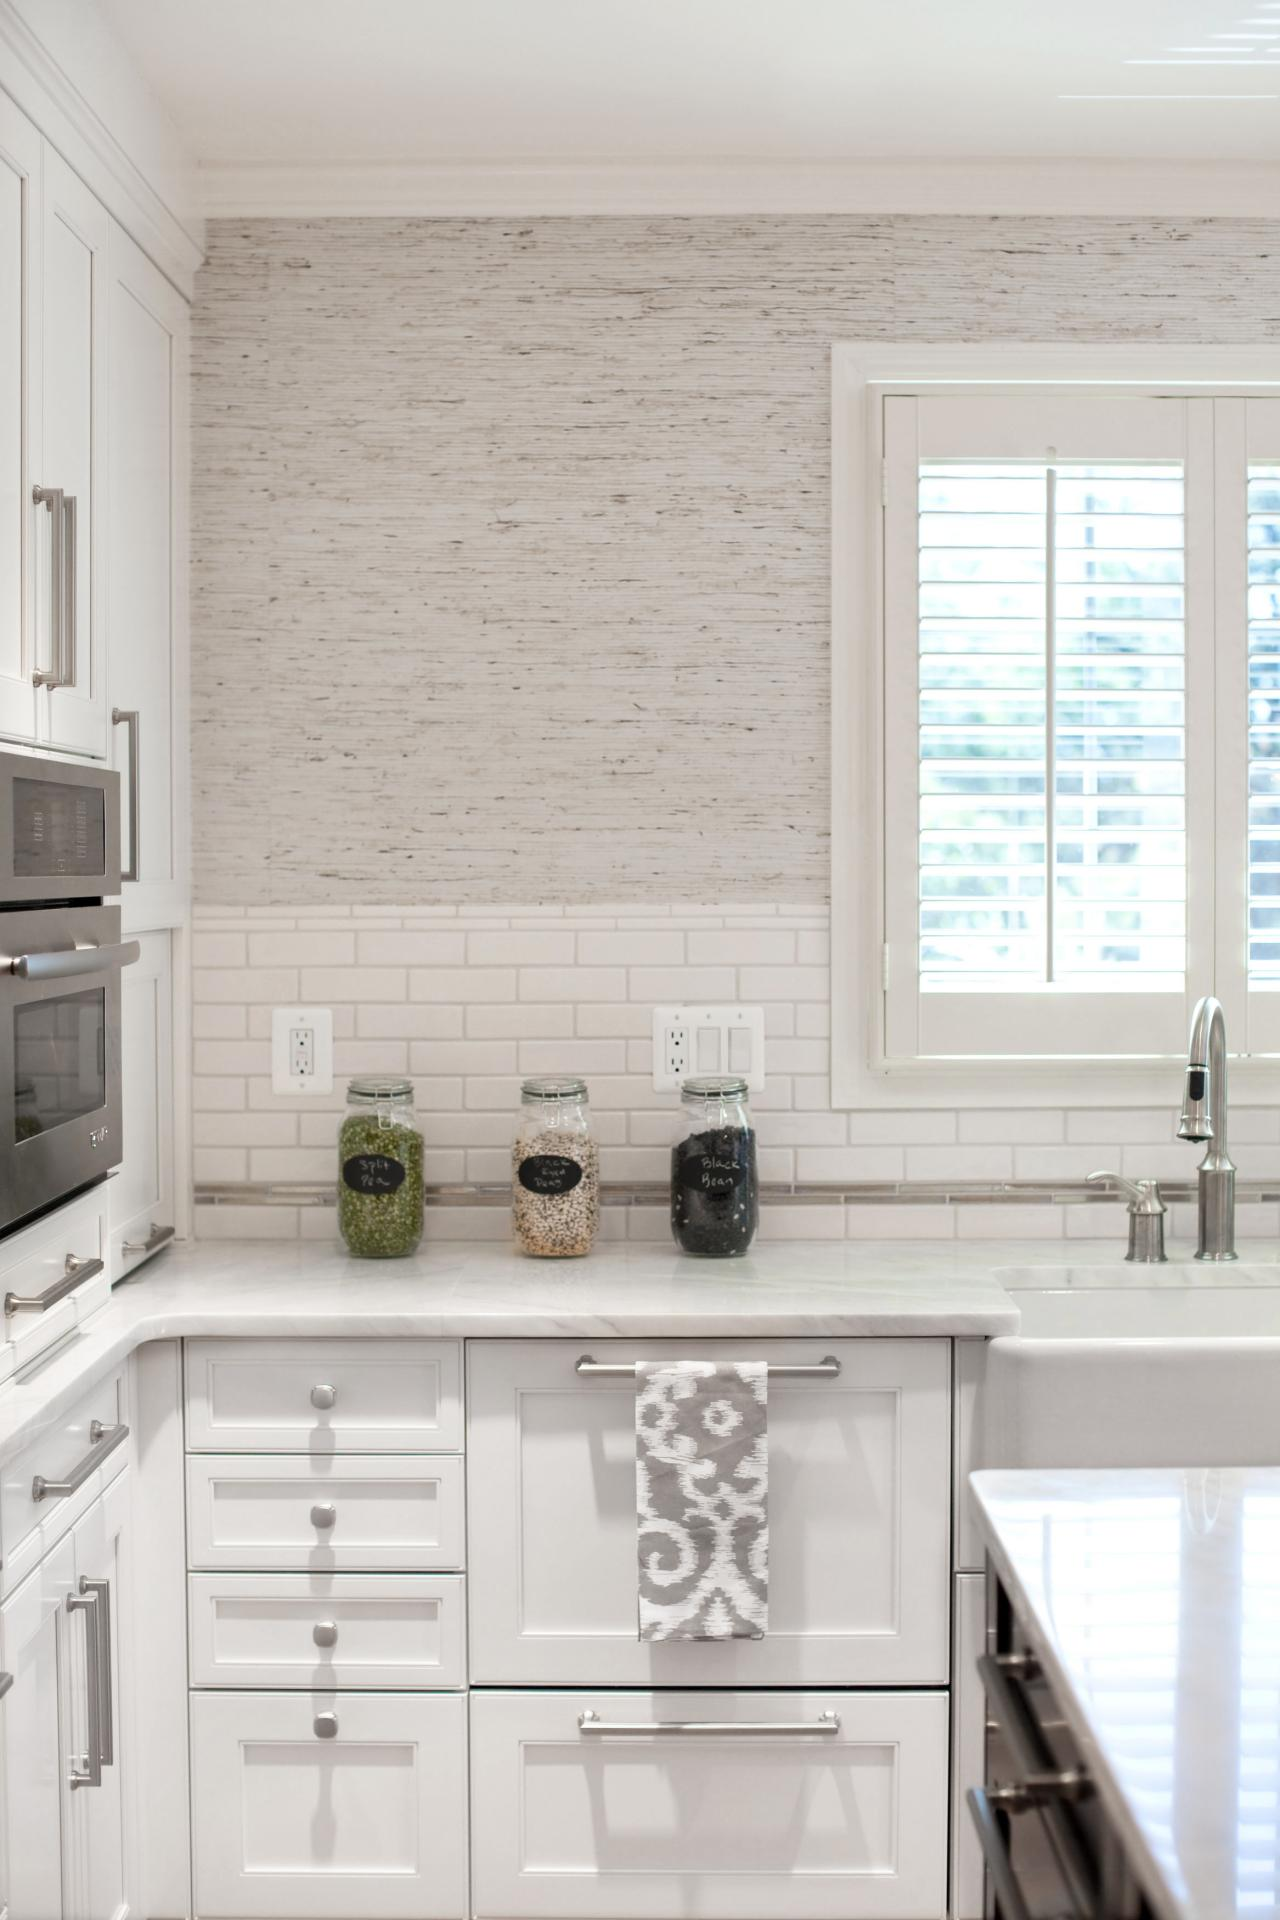 Kitchen Wallpaper Black and White Transitional Kitchen Photos HGTV 1280x1920